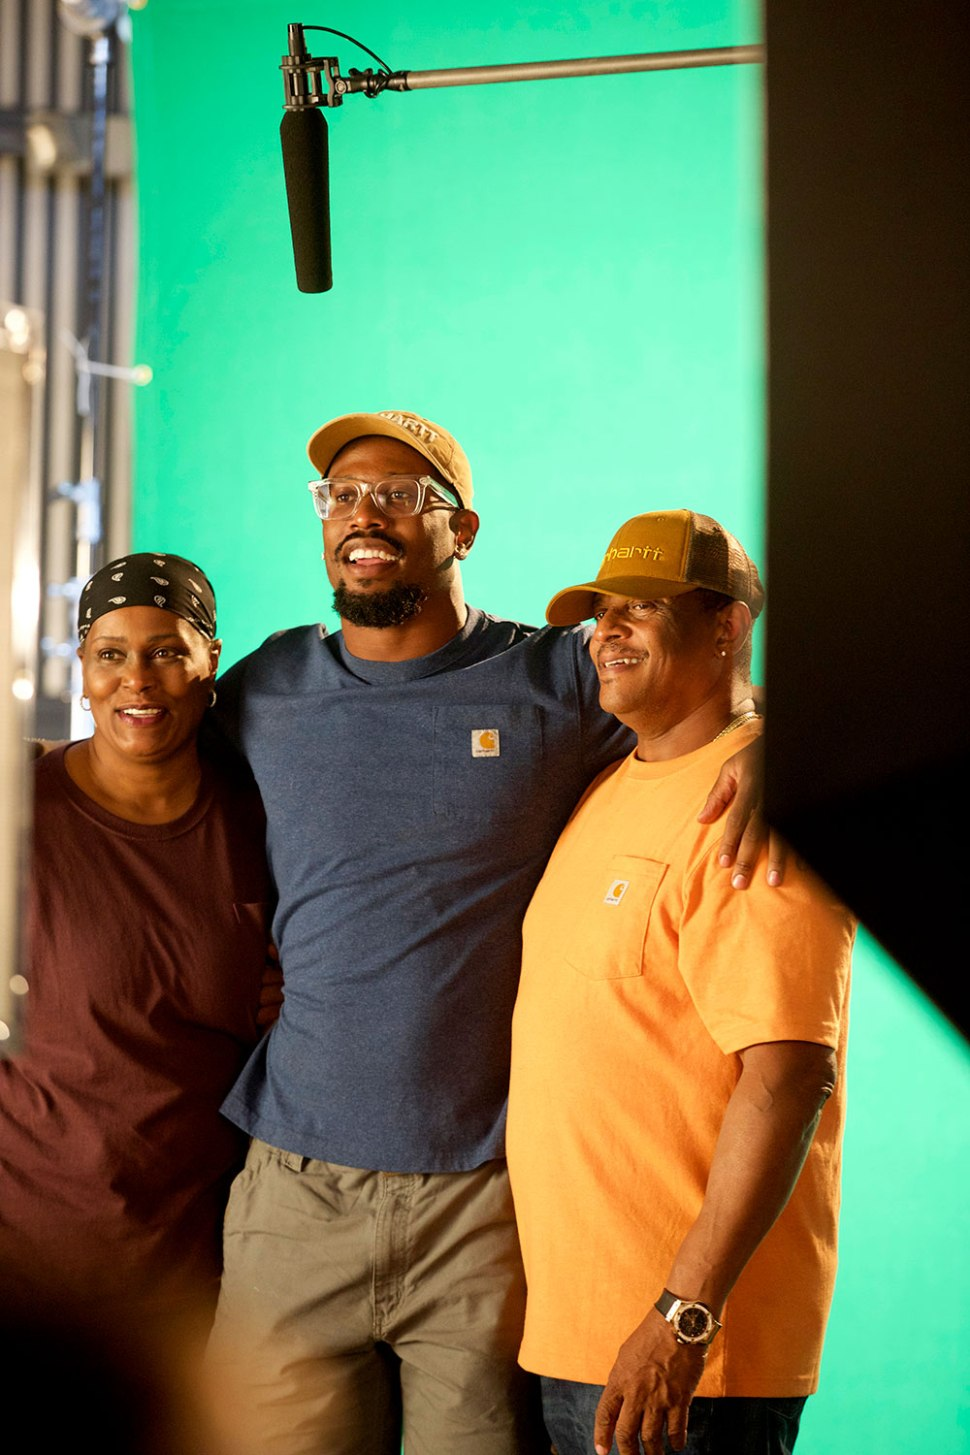 Von Miller with his parents on the set of a Carhartt commercial